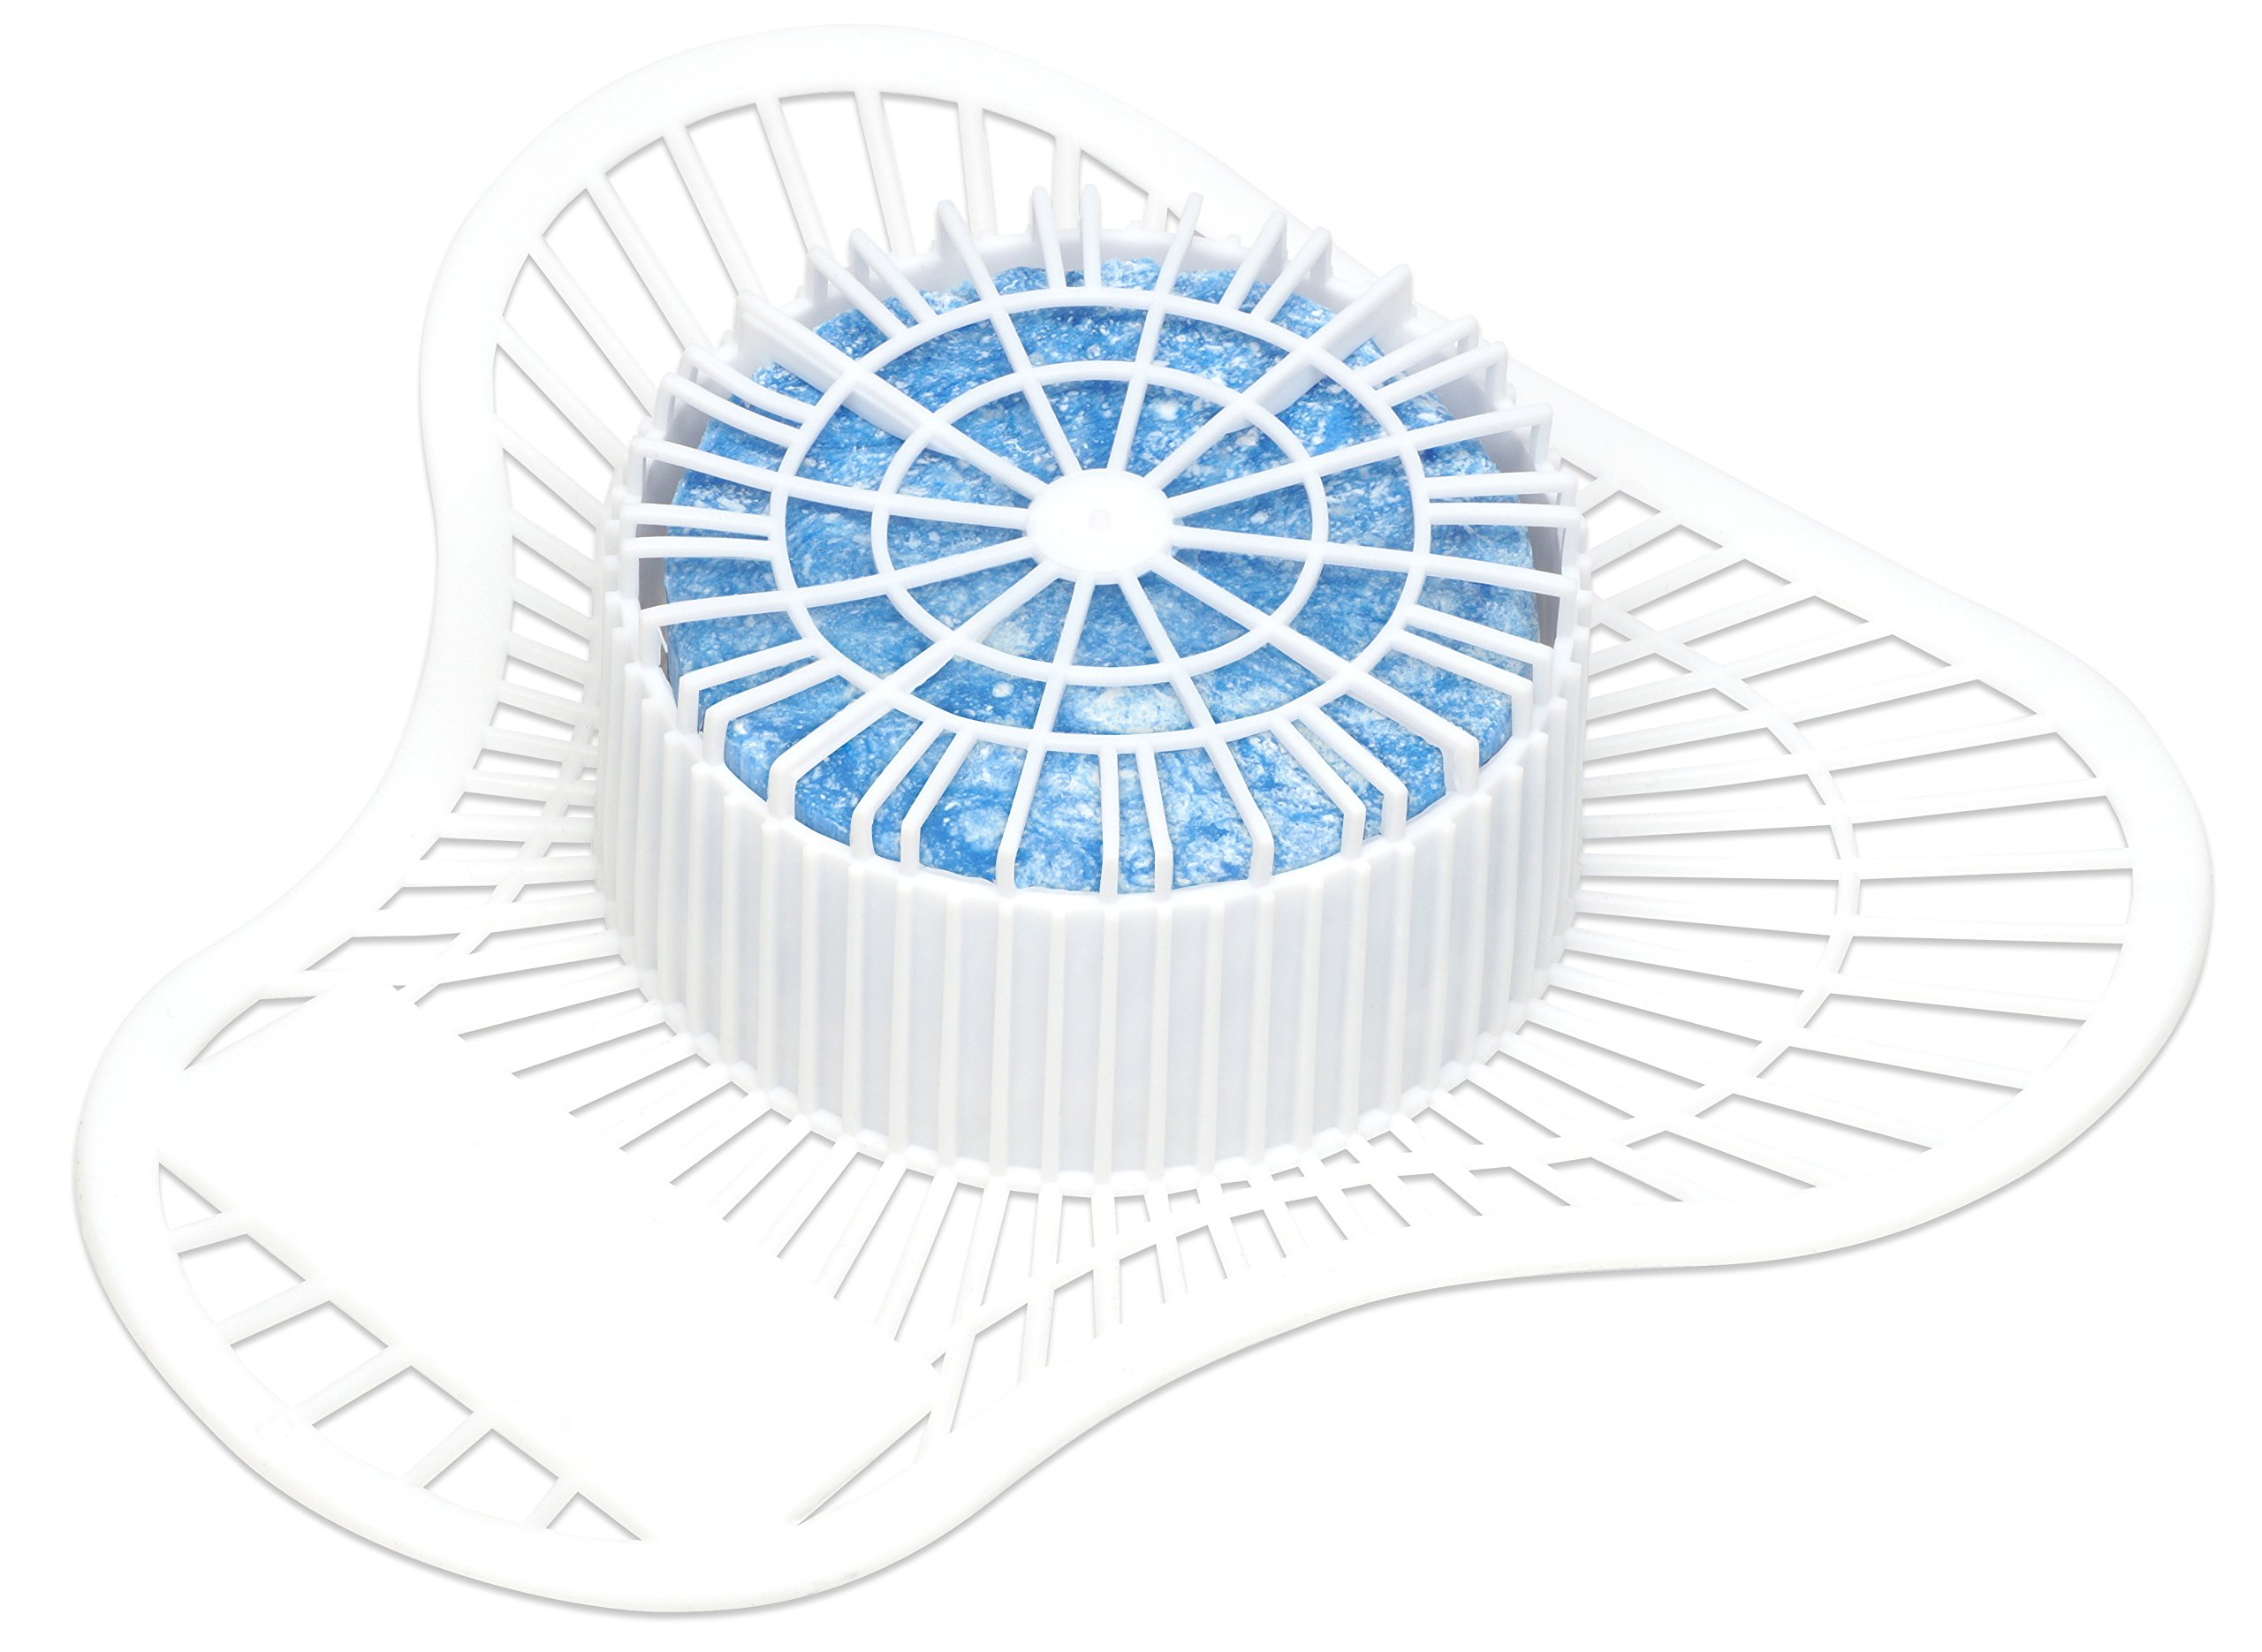 Big D 688 Extra Duty Urinal Screen with Non-Para Block, Mint Fresh Fragrance, 1500 Flushes (Pack of 12) - Ideal for restrooms in offices, schools, restaurants, hotels, stores by Big D